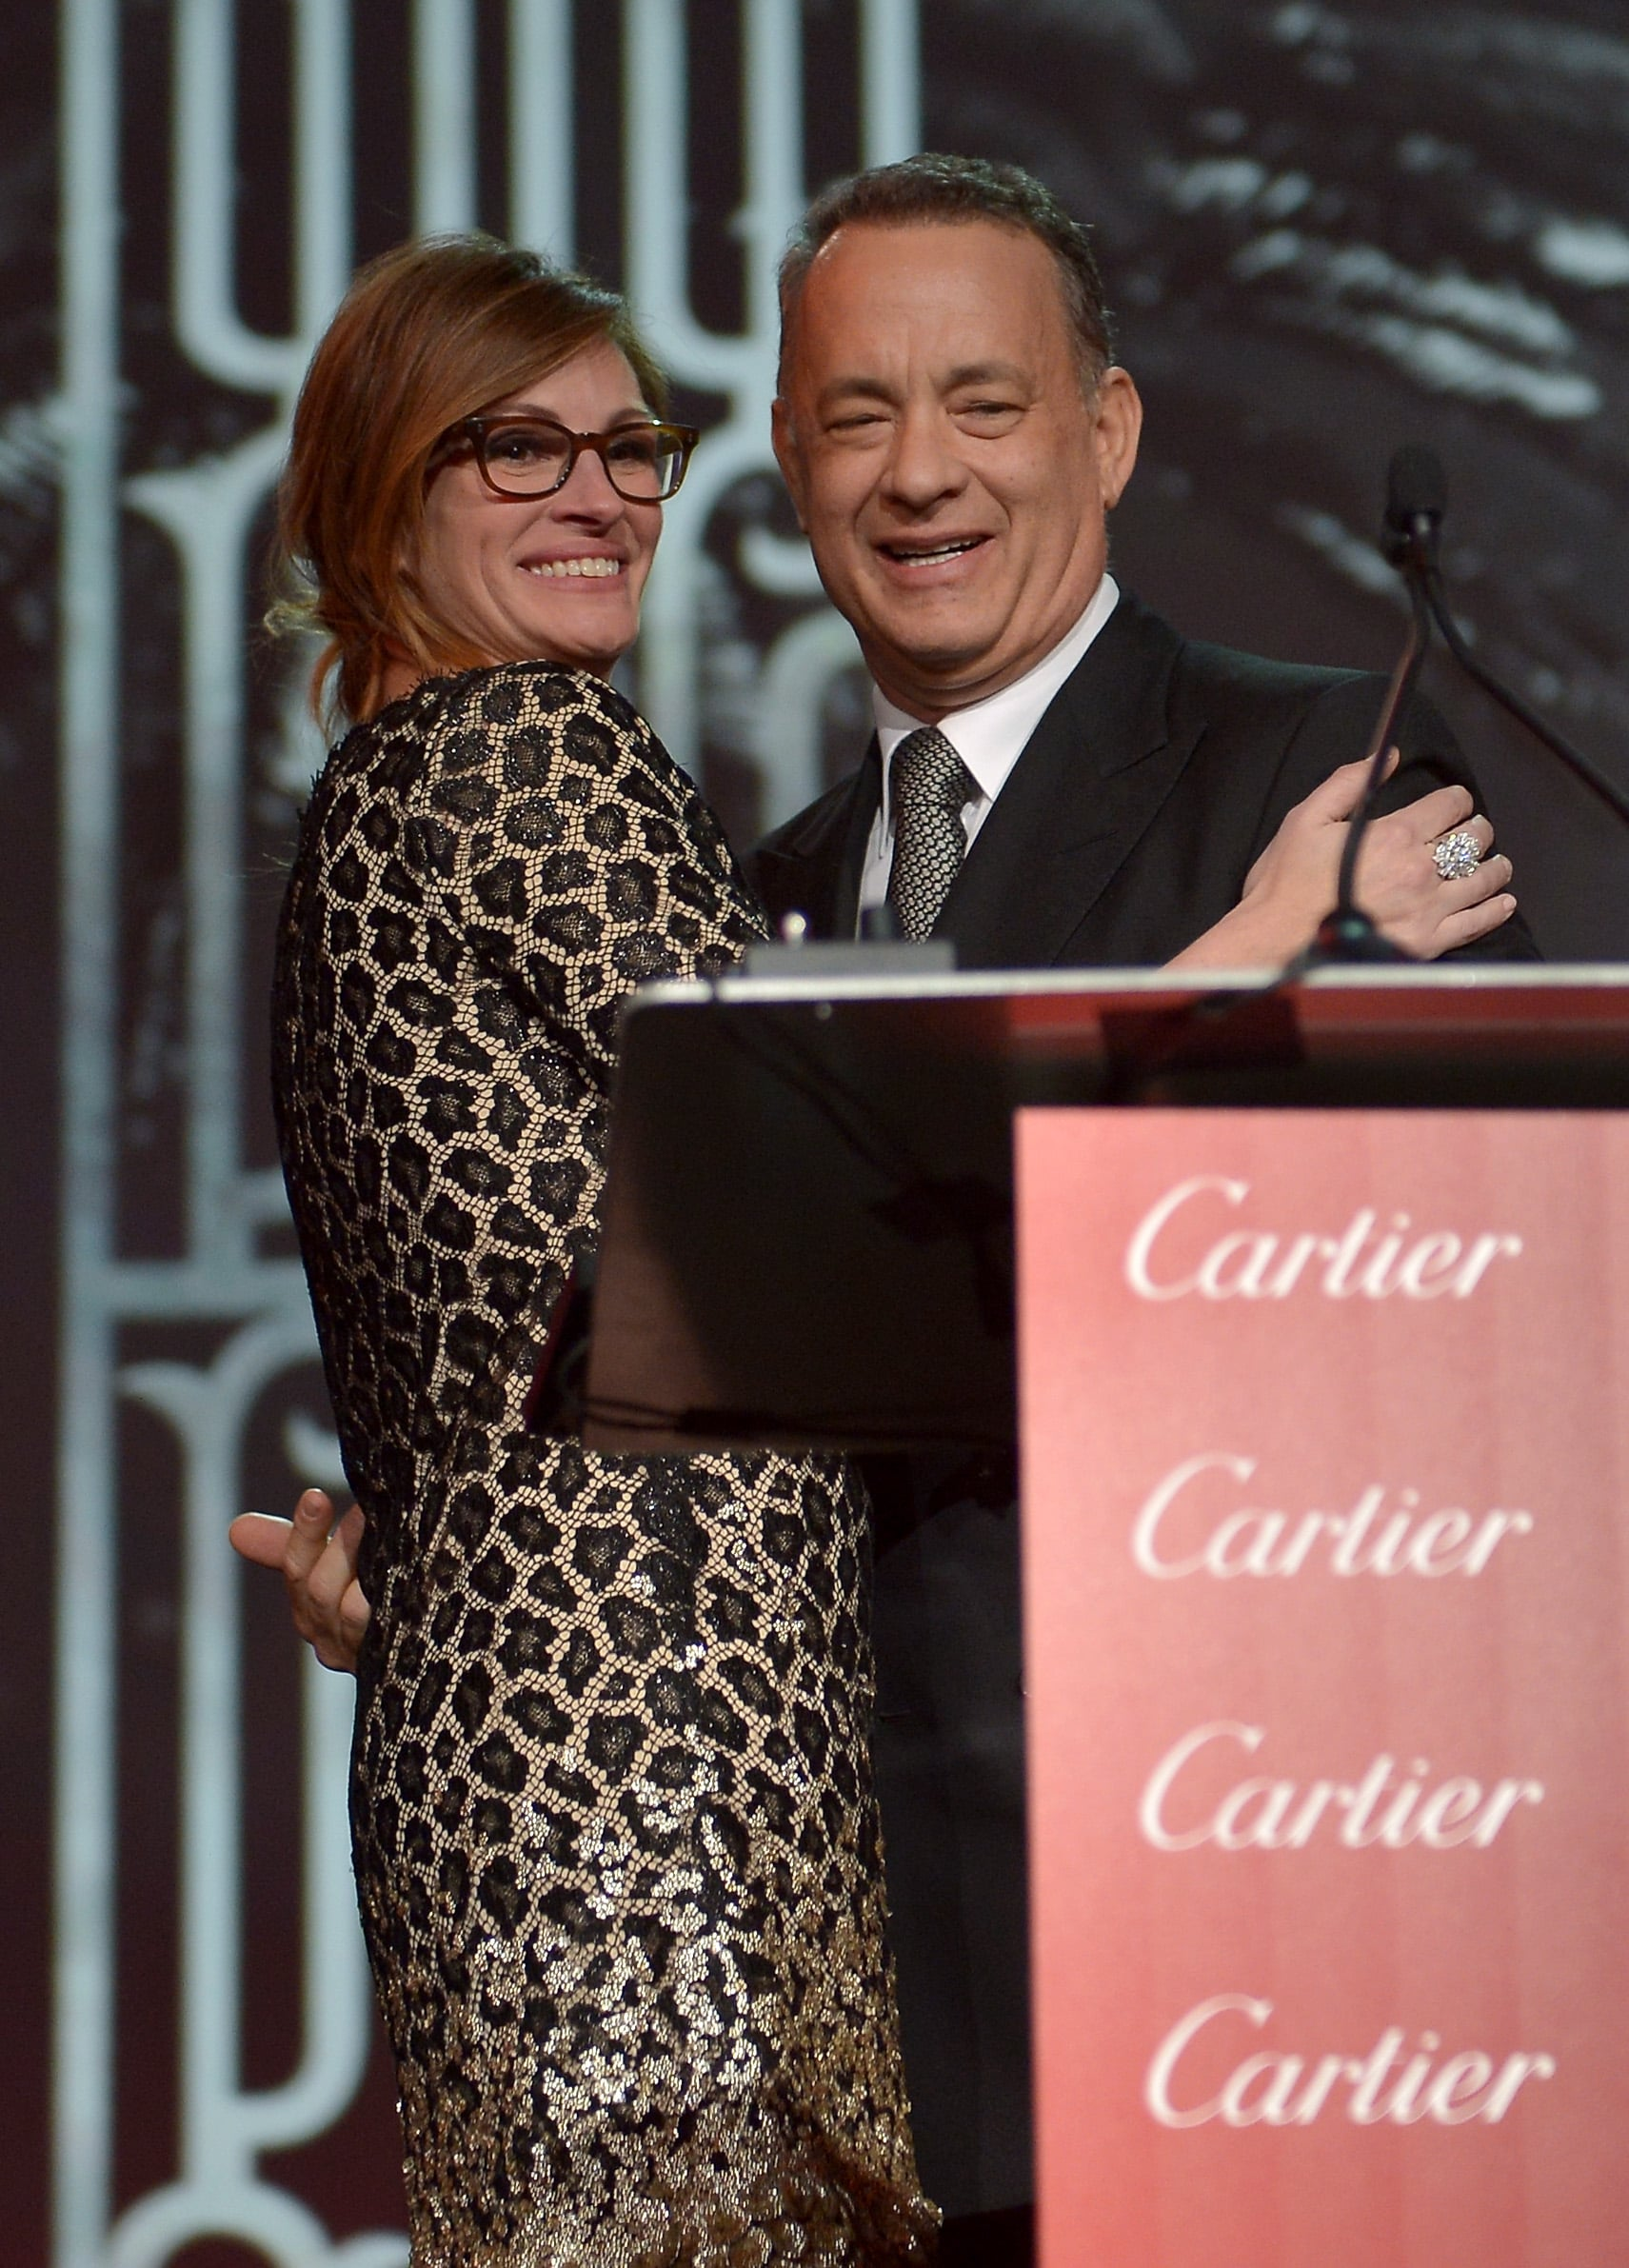 Tom Hanks's friend and former costar Julia Roberts presented him with his chairman's award.